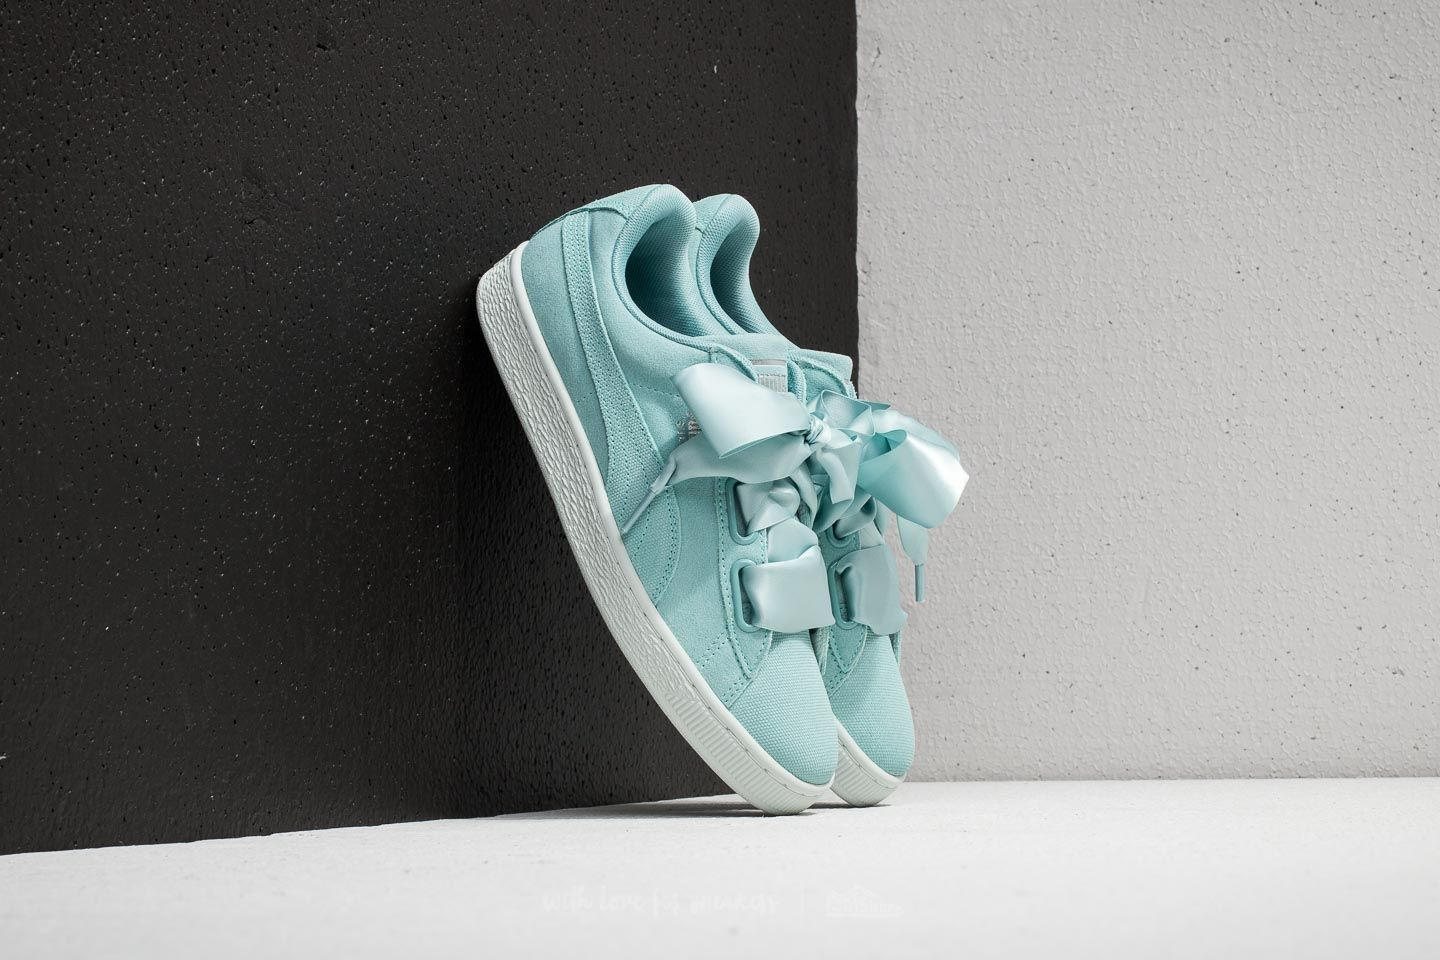 separation shoes c1939 fc78c Puma Suede Heart Pebble Wn s Aquifer  Blue Flower at a great price 54 € buy